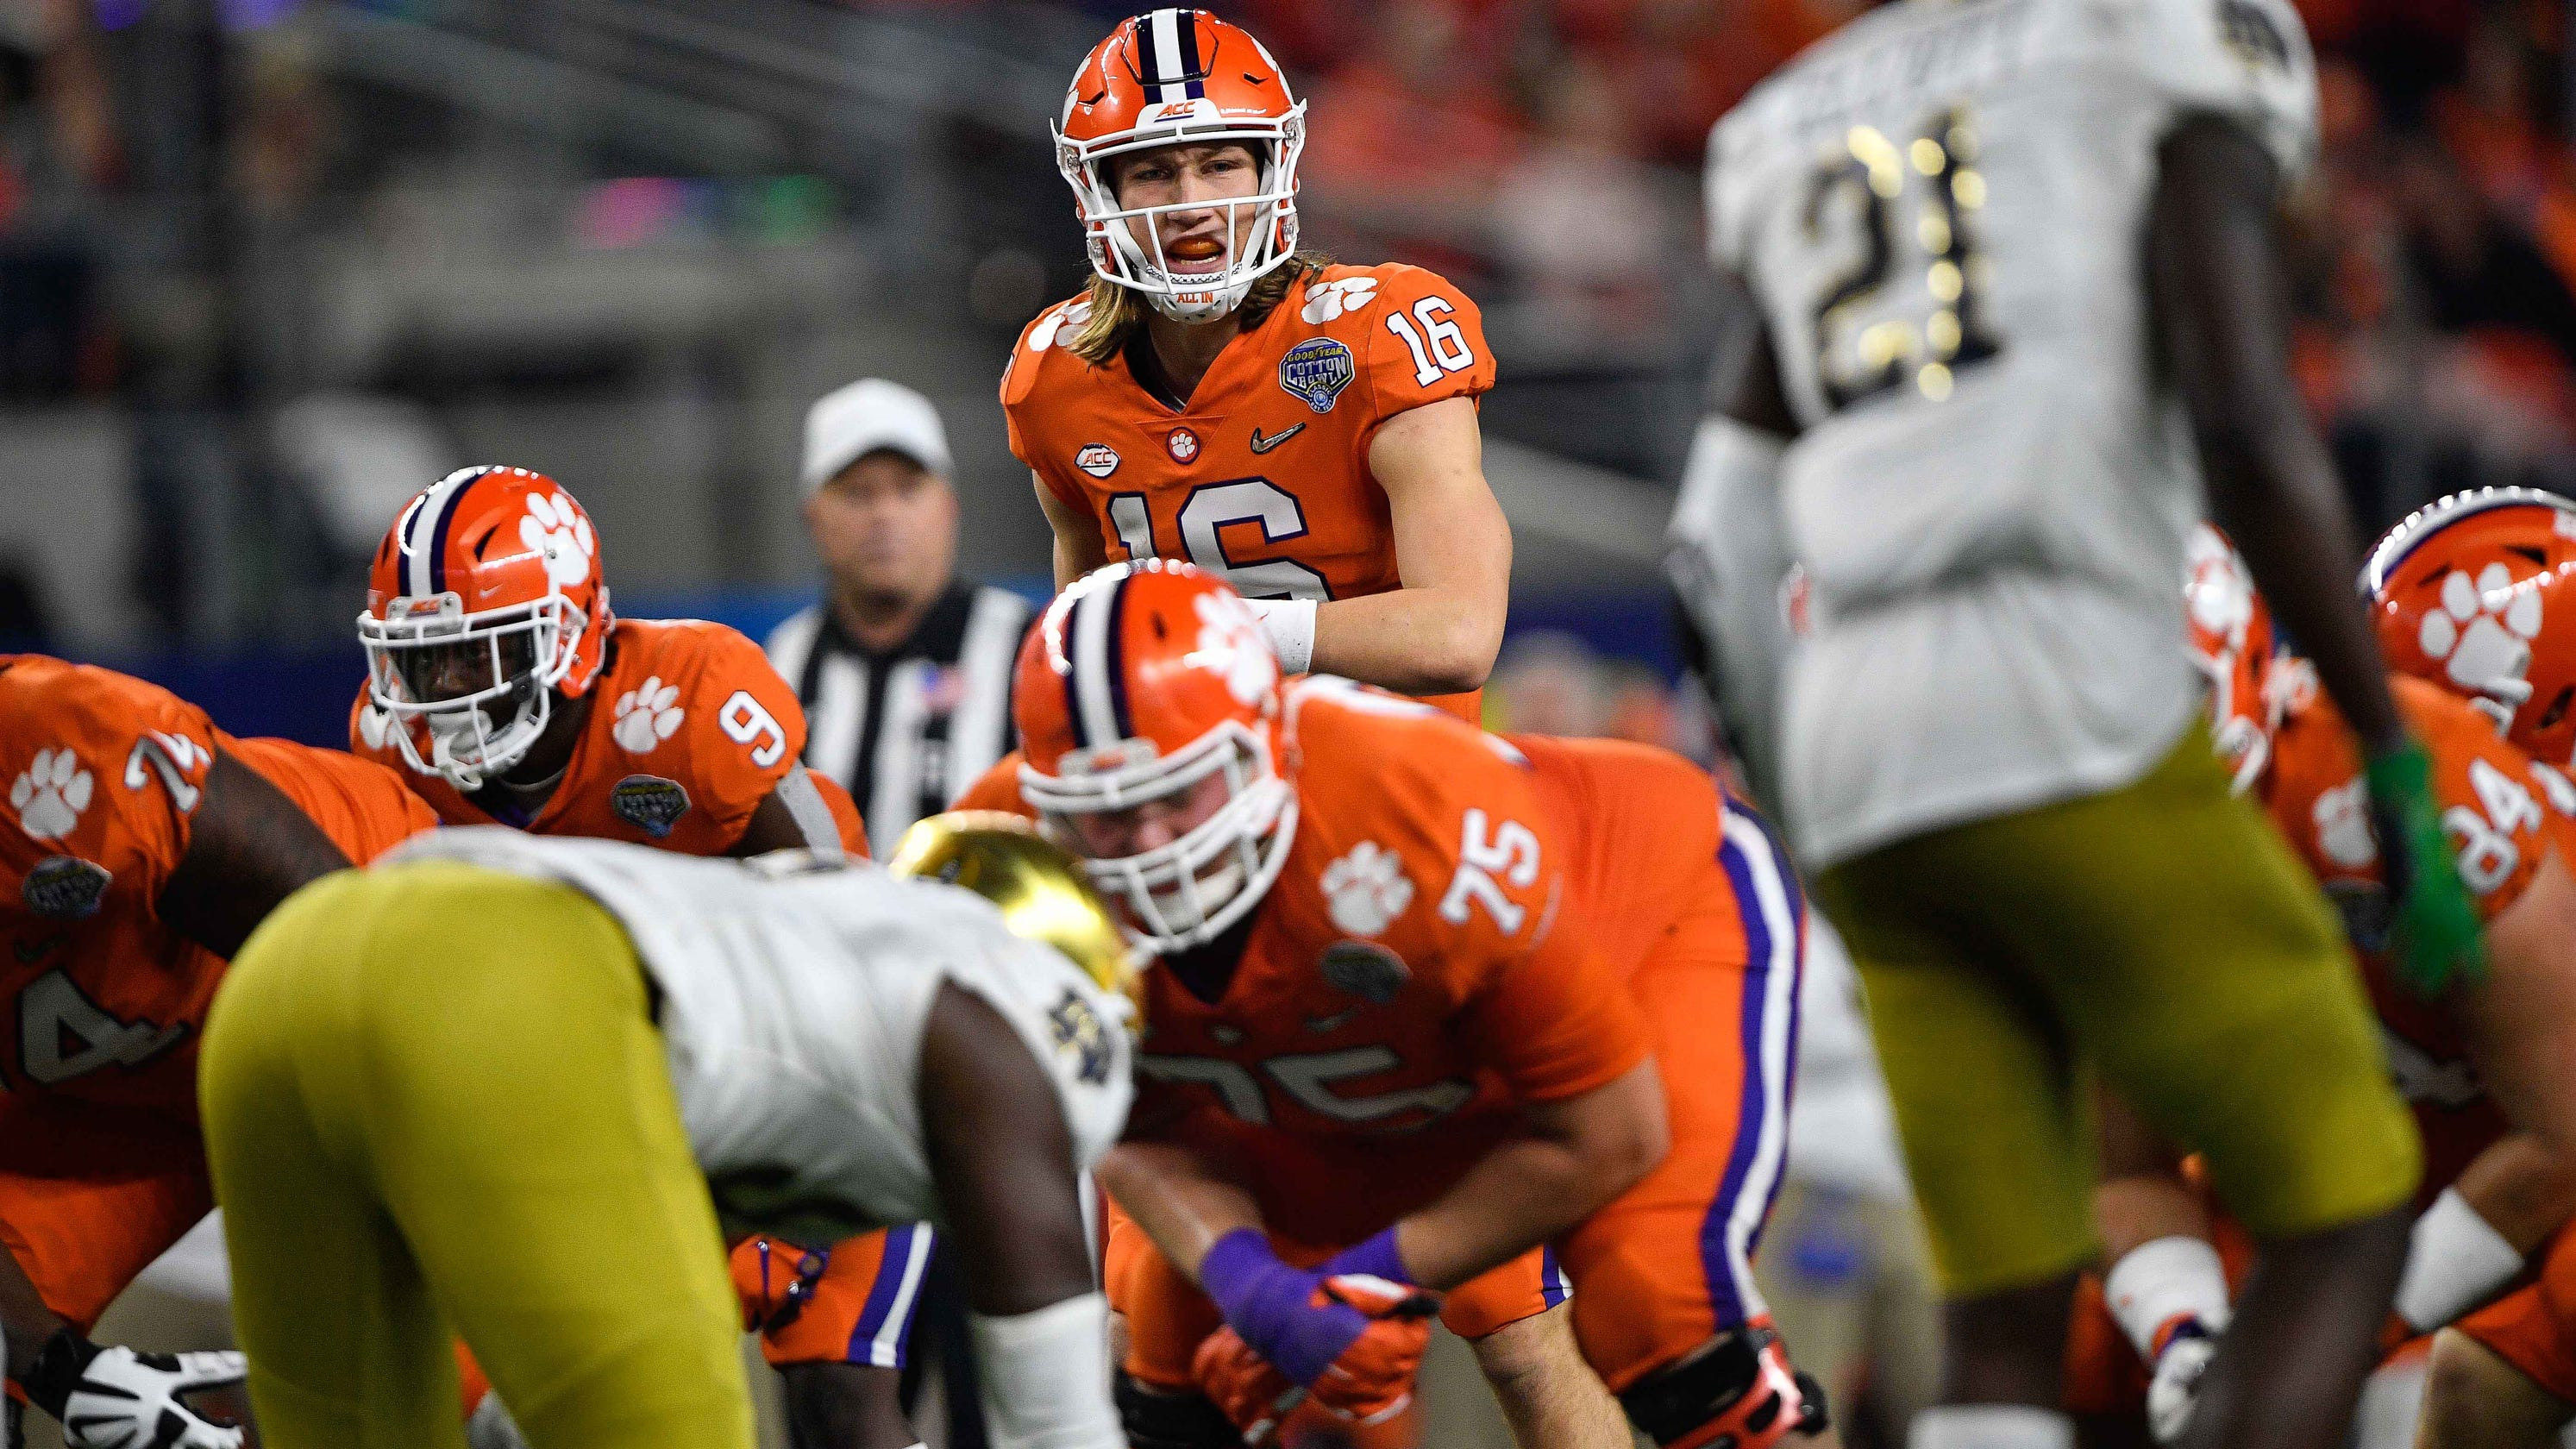 Trevor Lawrence is the difference for Clemson. Not the scheme